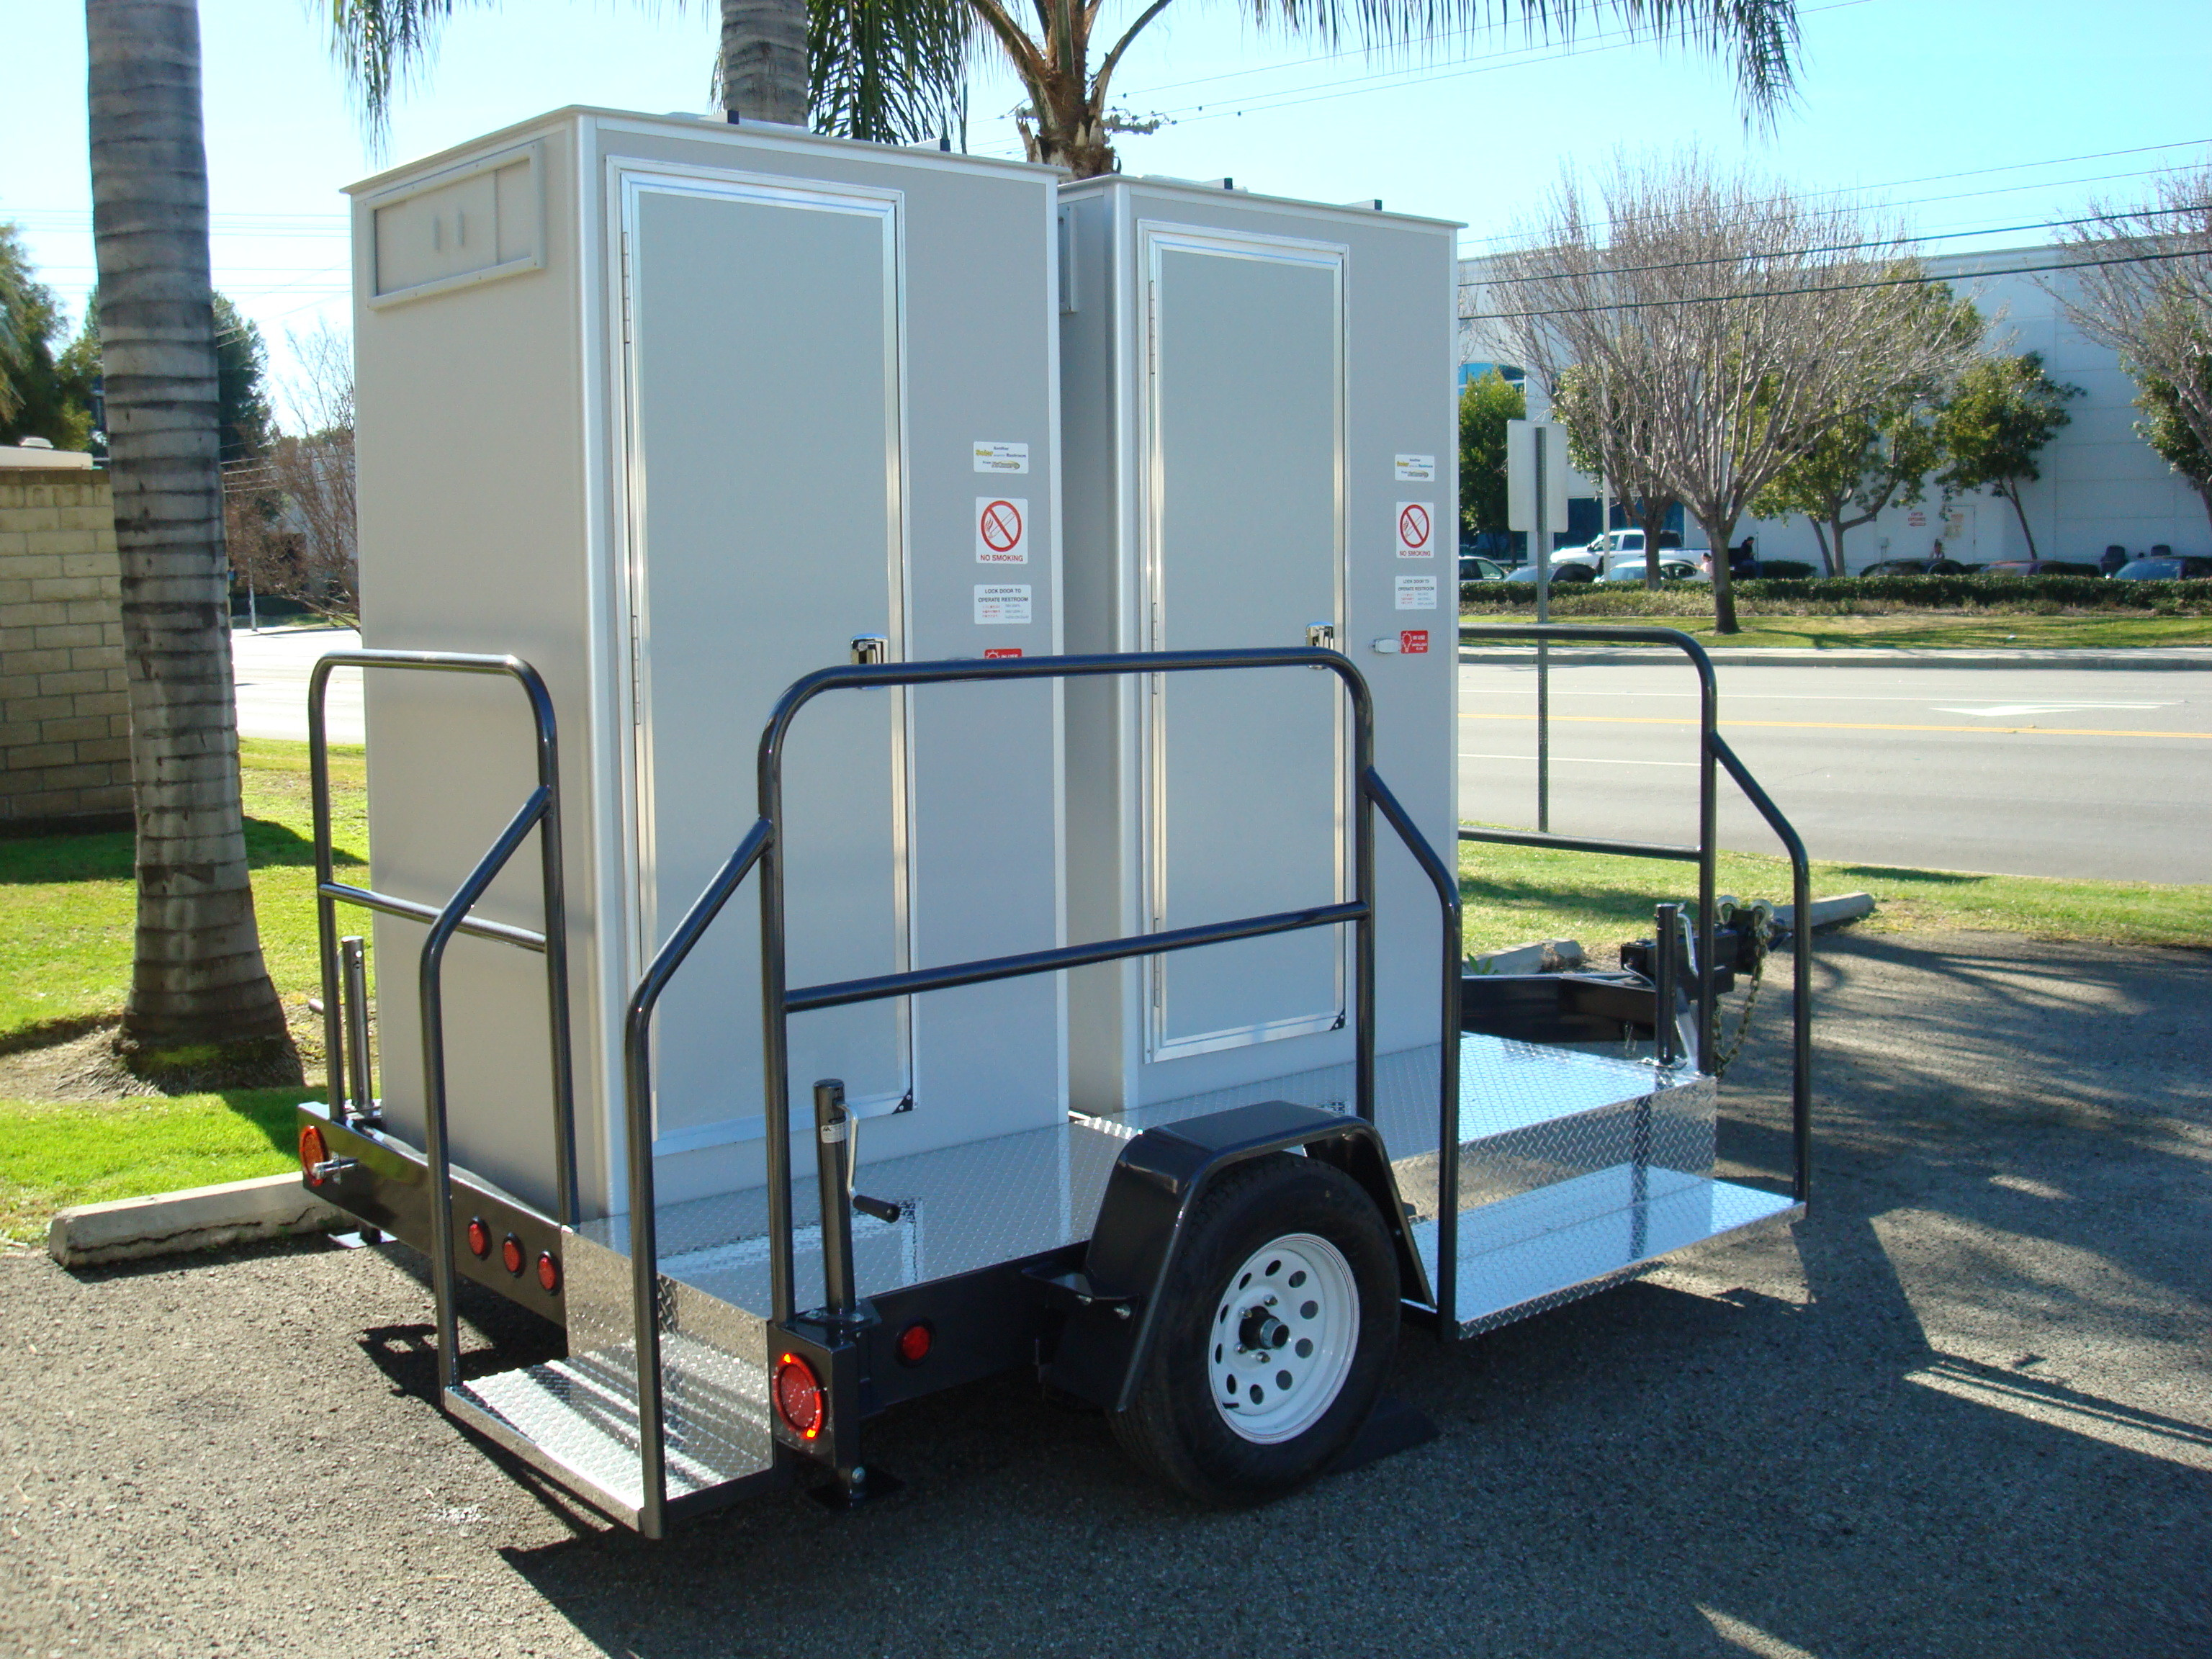 Vip Restrooms Porta Potties Restroom Shower Trailers